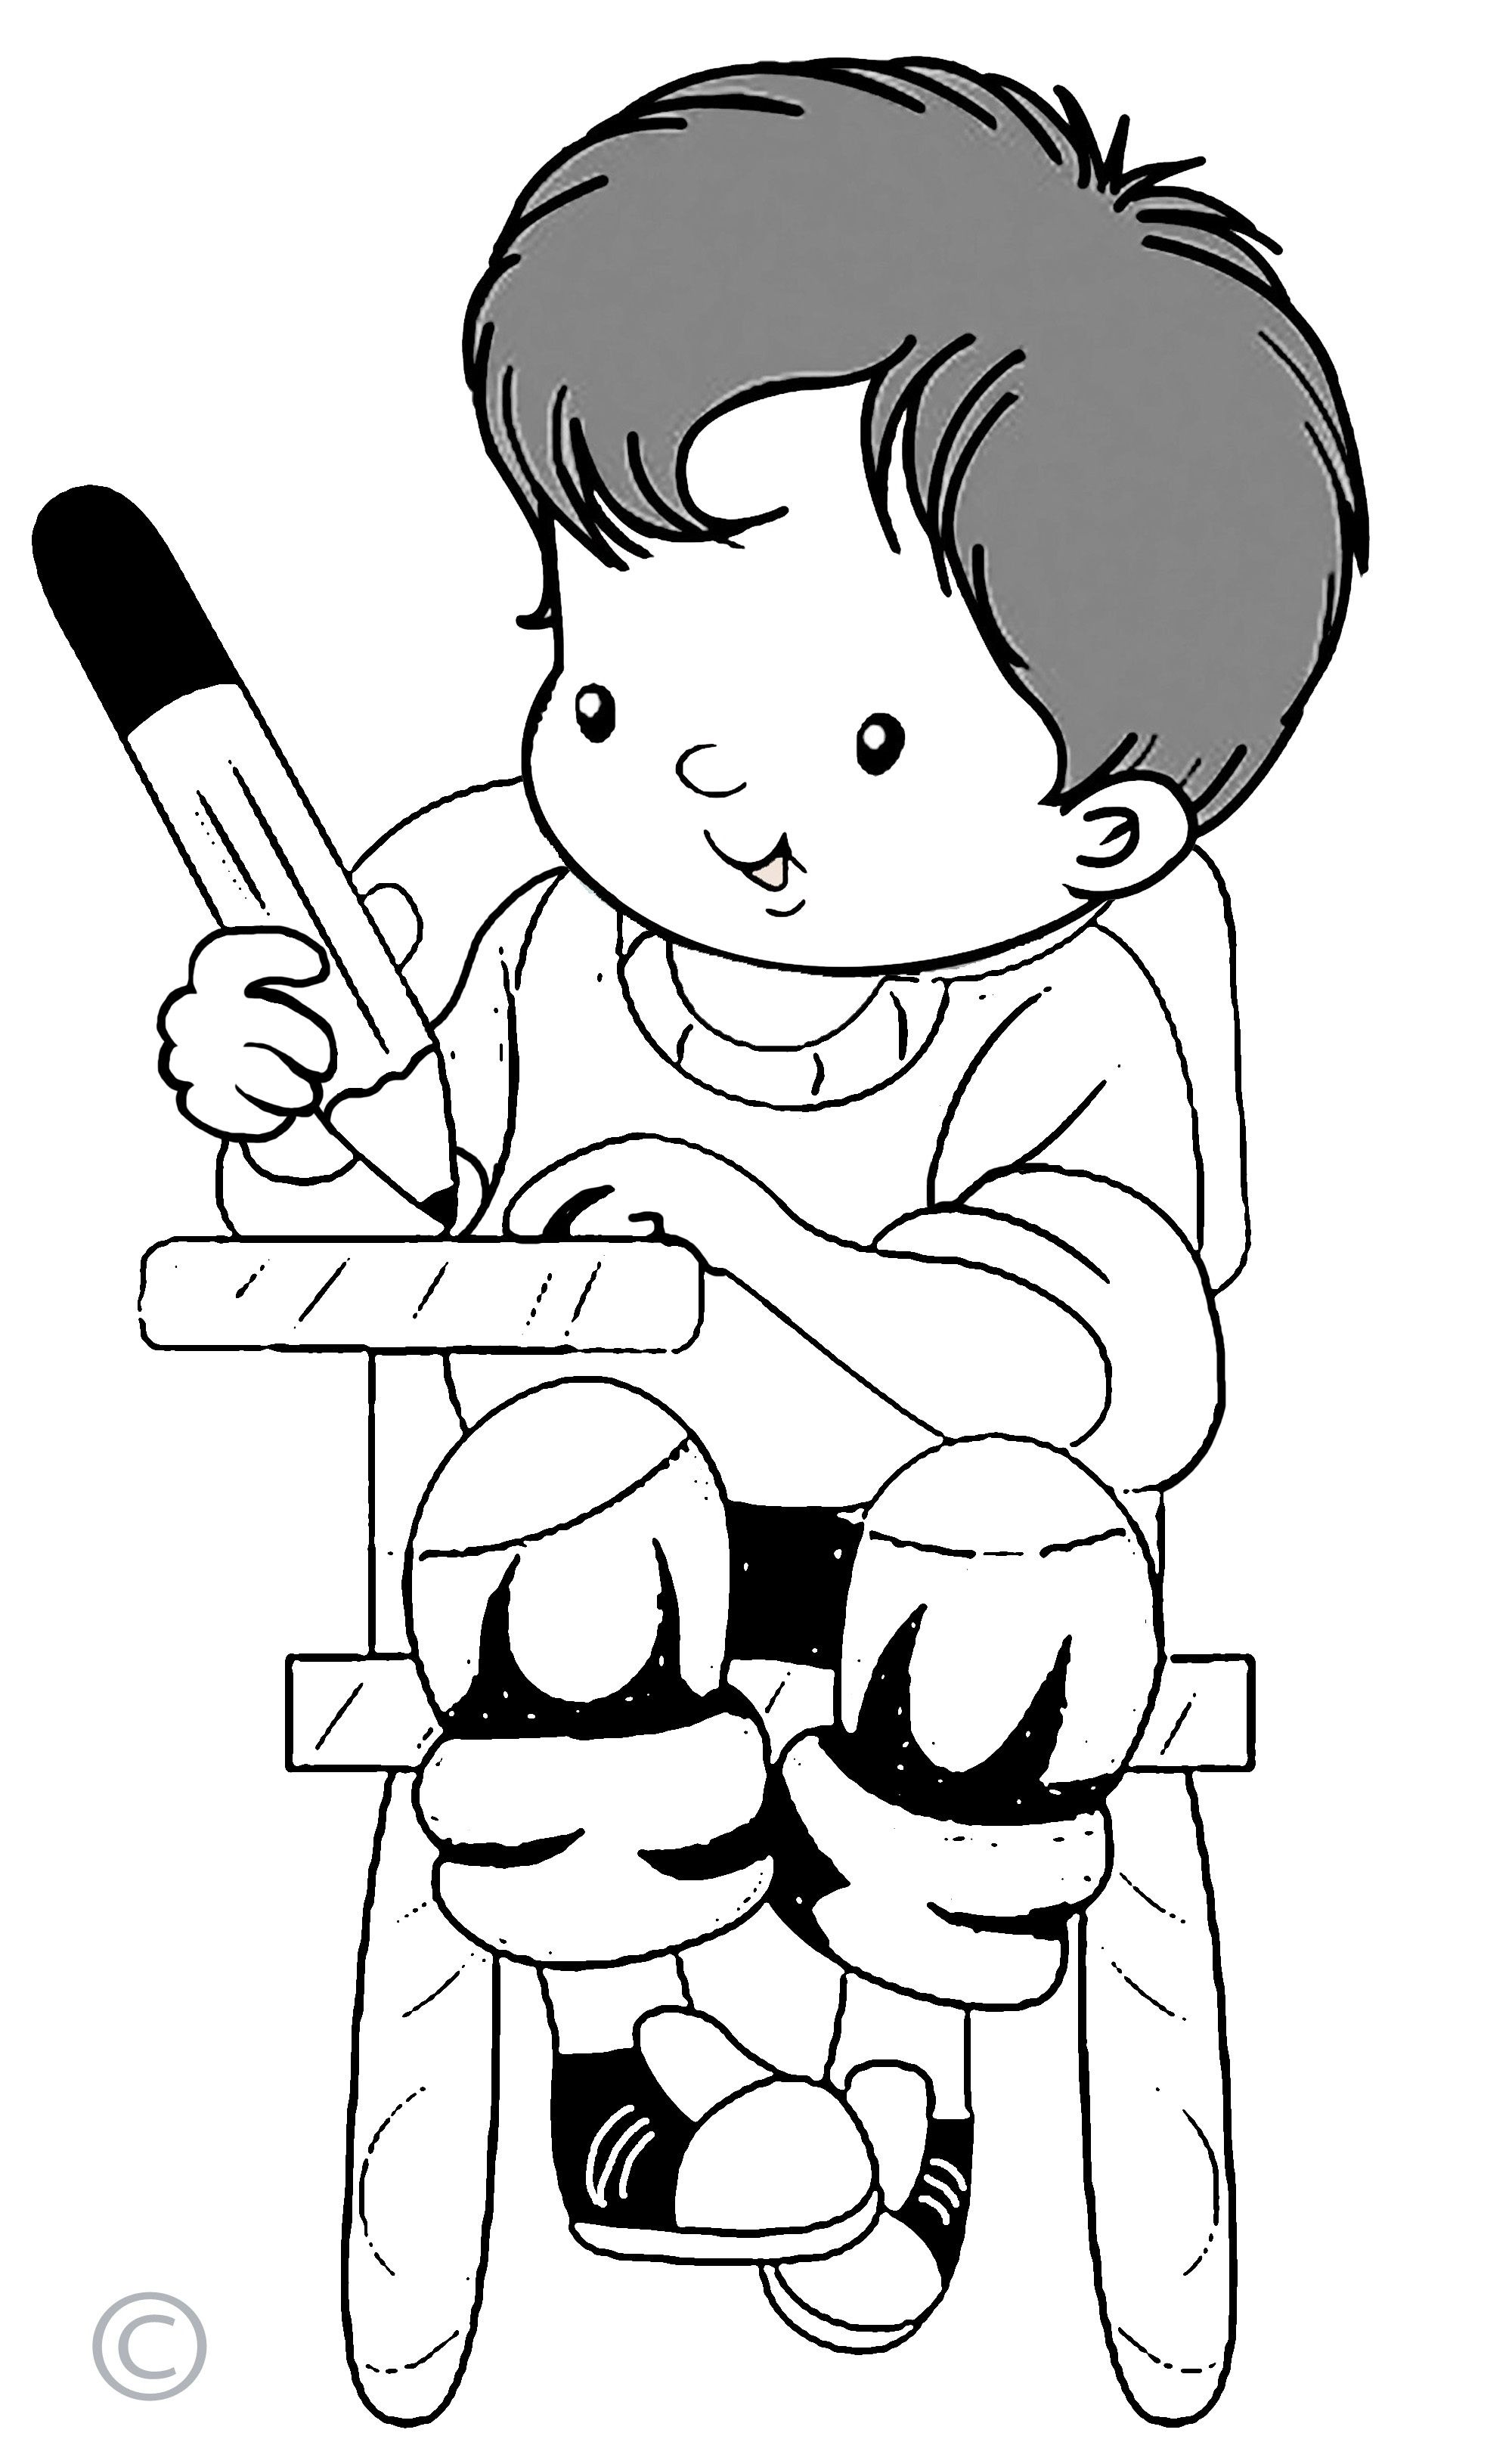 28 Collection Of Kids Writing Clipart Black And White High In Children Writing Clipart Black And White19331 Kids Writing Writing Clipart Student Clipart